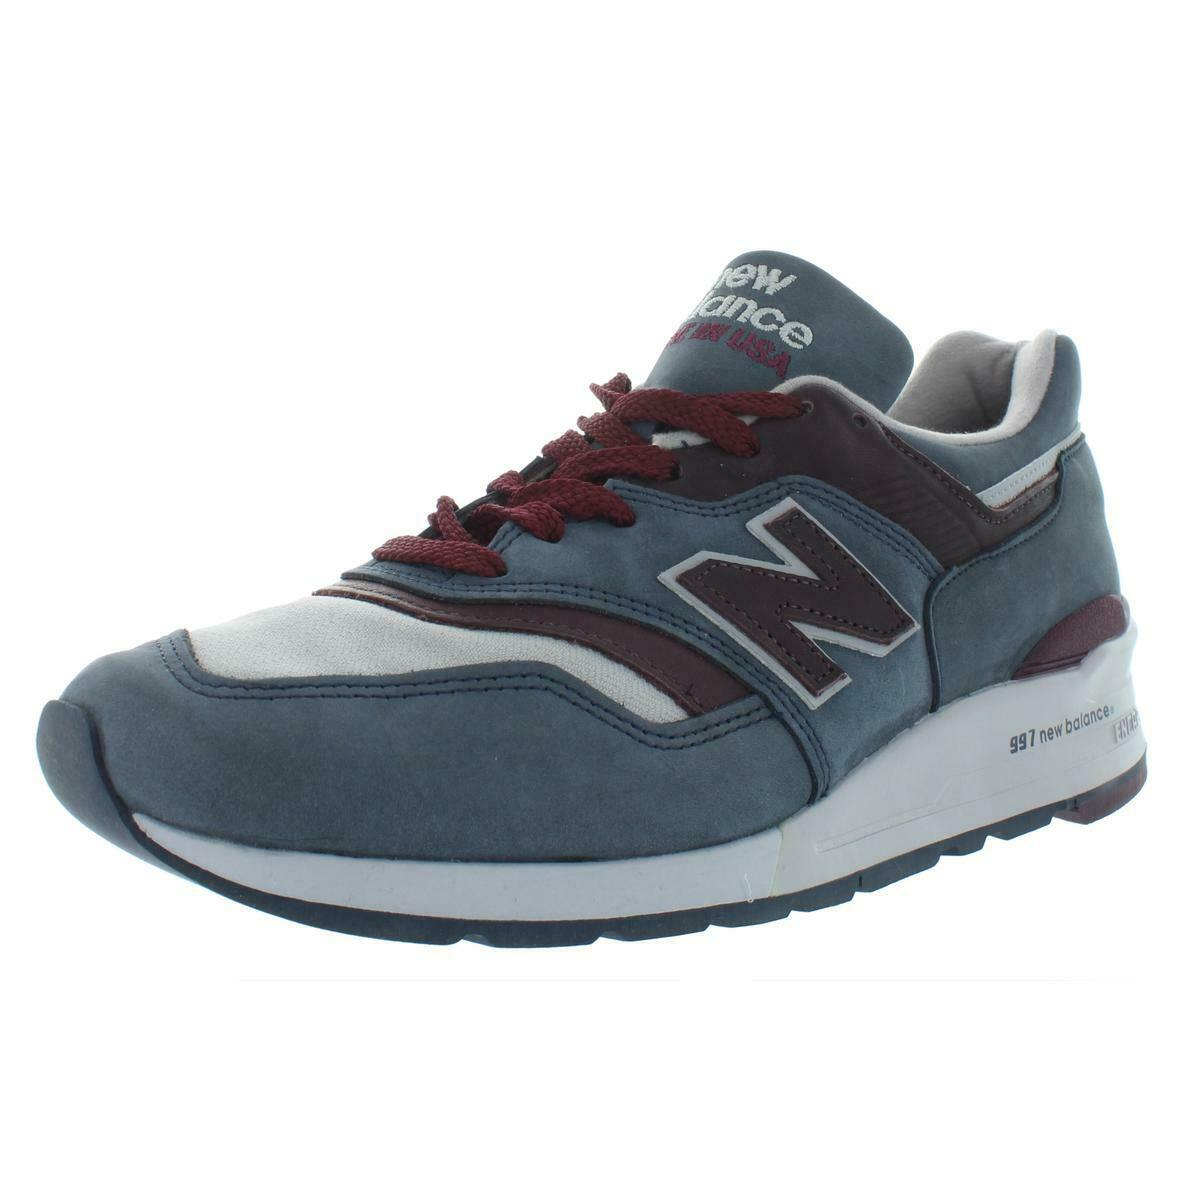 New Balance Mens bluee Low Top Casual Sneakers shoes 10.5 Medium (D) BHFO 8923